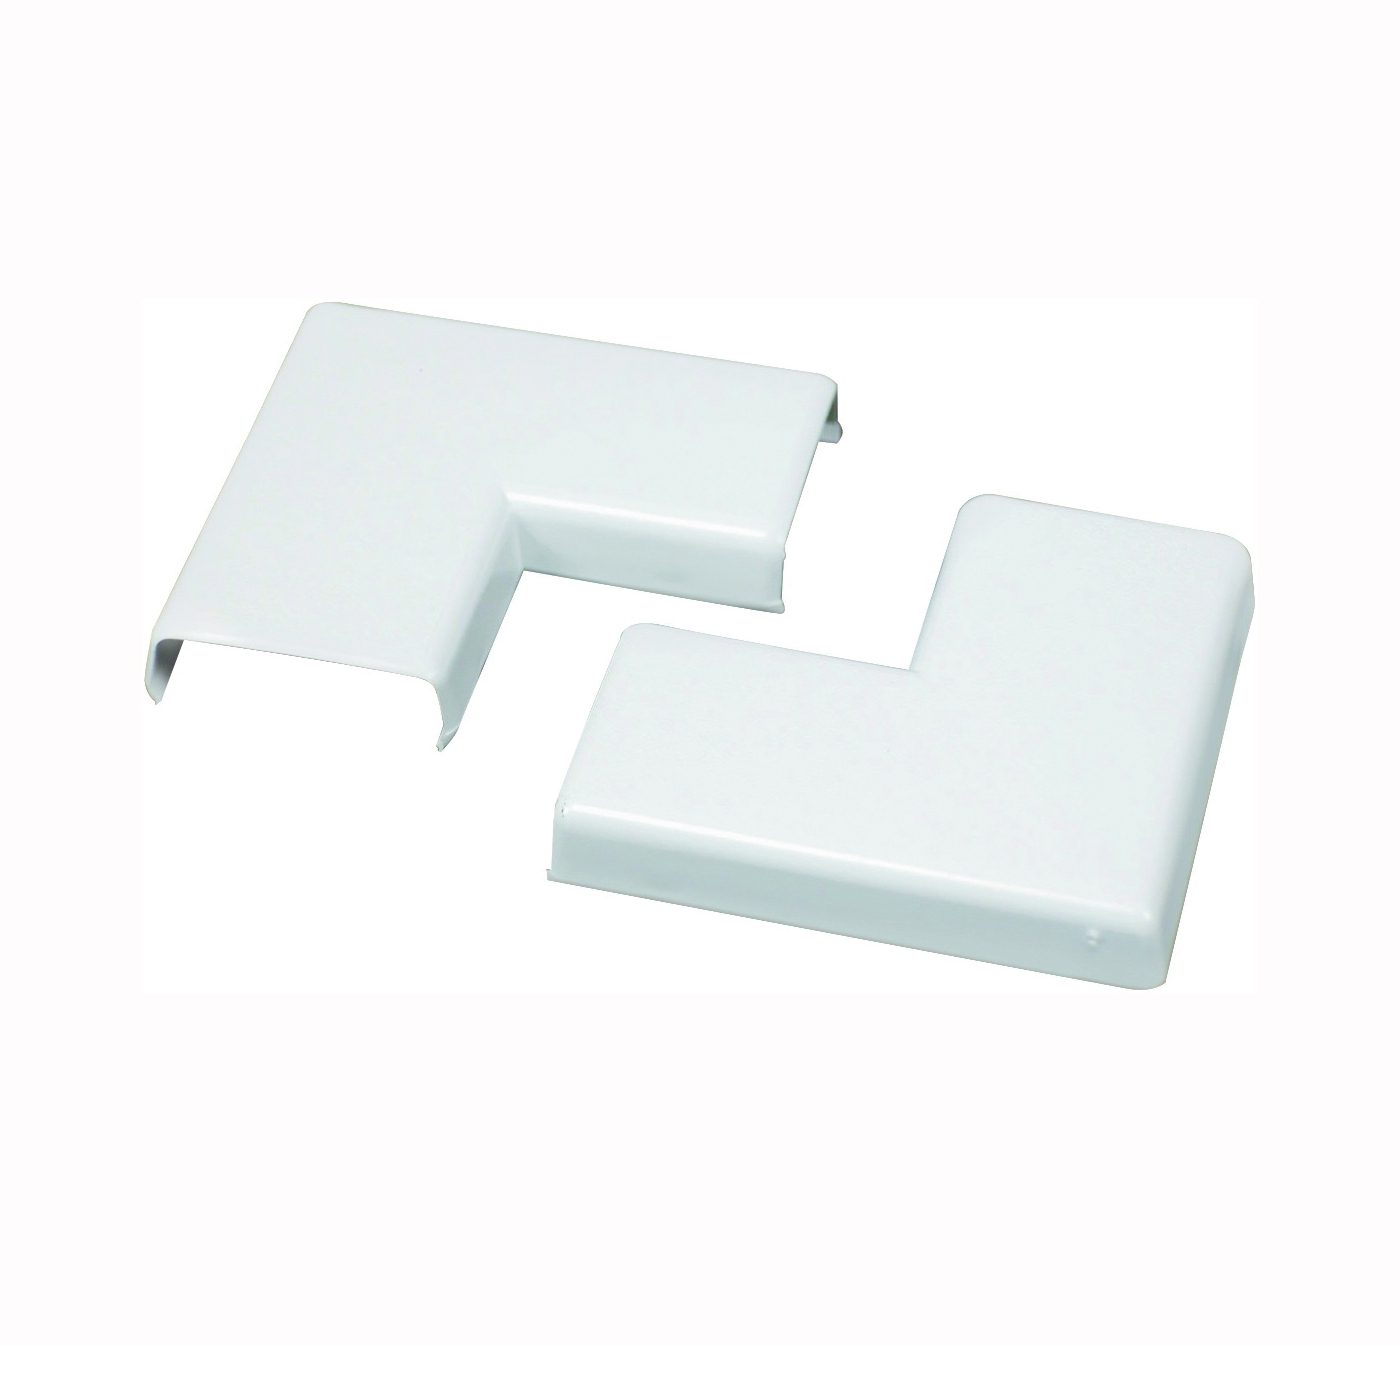 Picture of Legrand Wiremold NMW6 Raceway Flat Elbow, Plastic, White